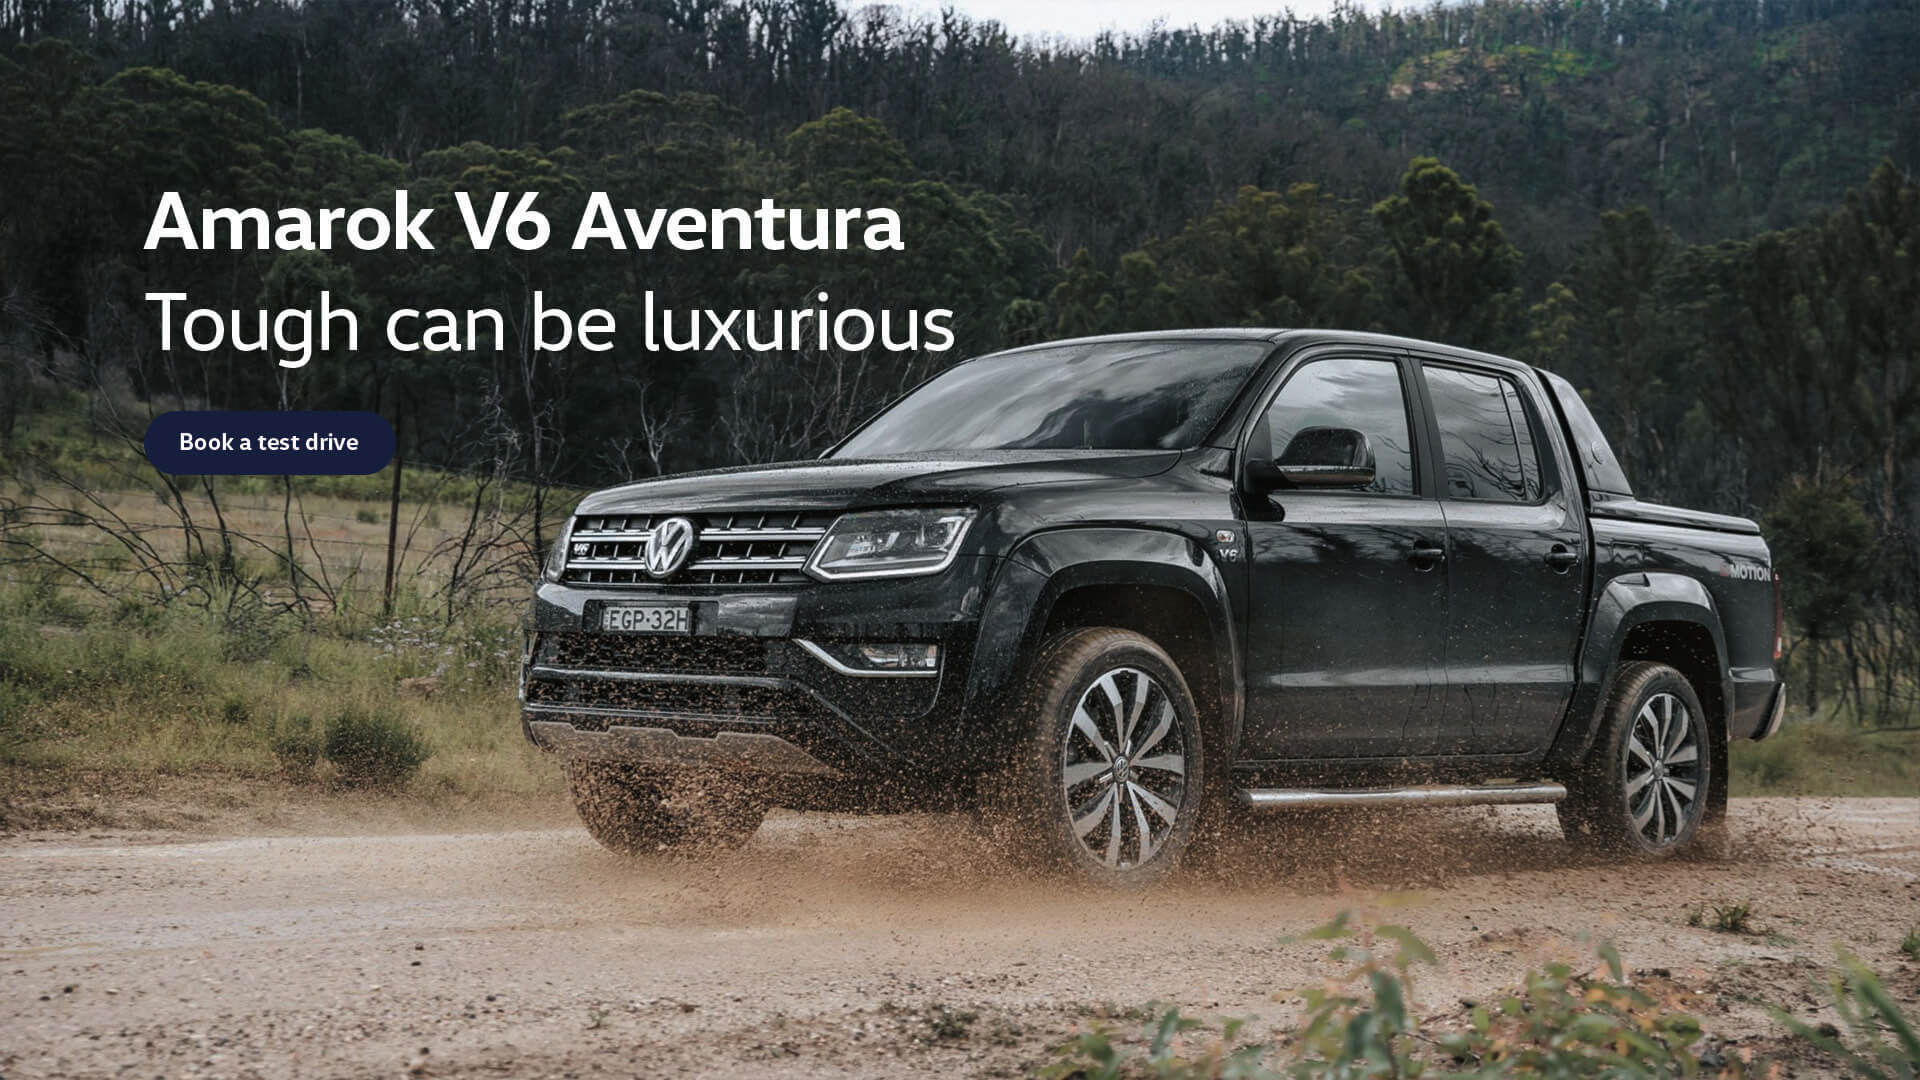 Amarok V6 Aventura. Tough can be luxurious